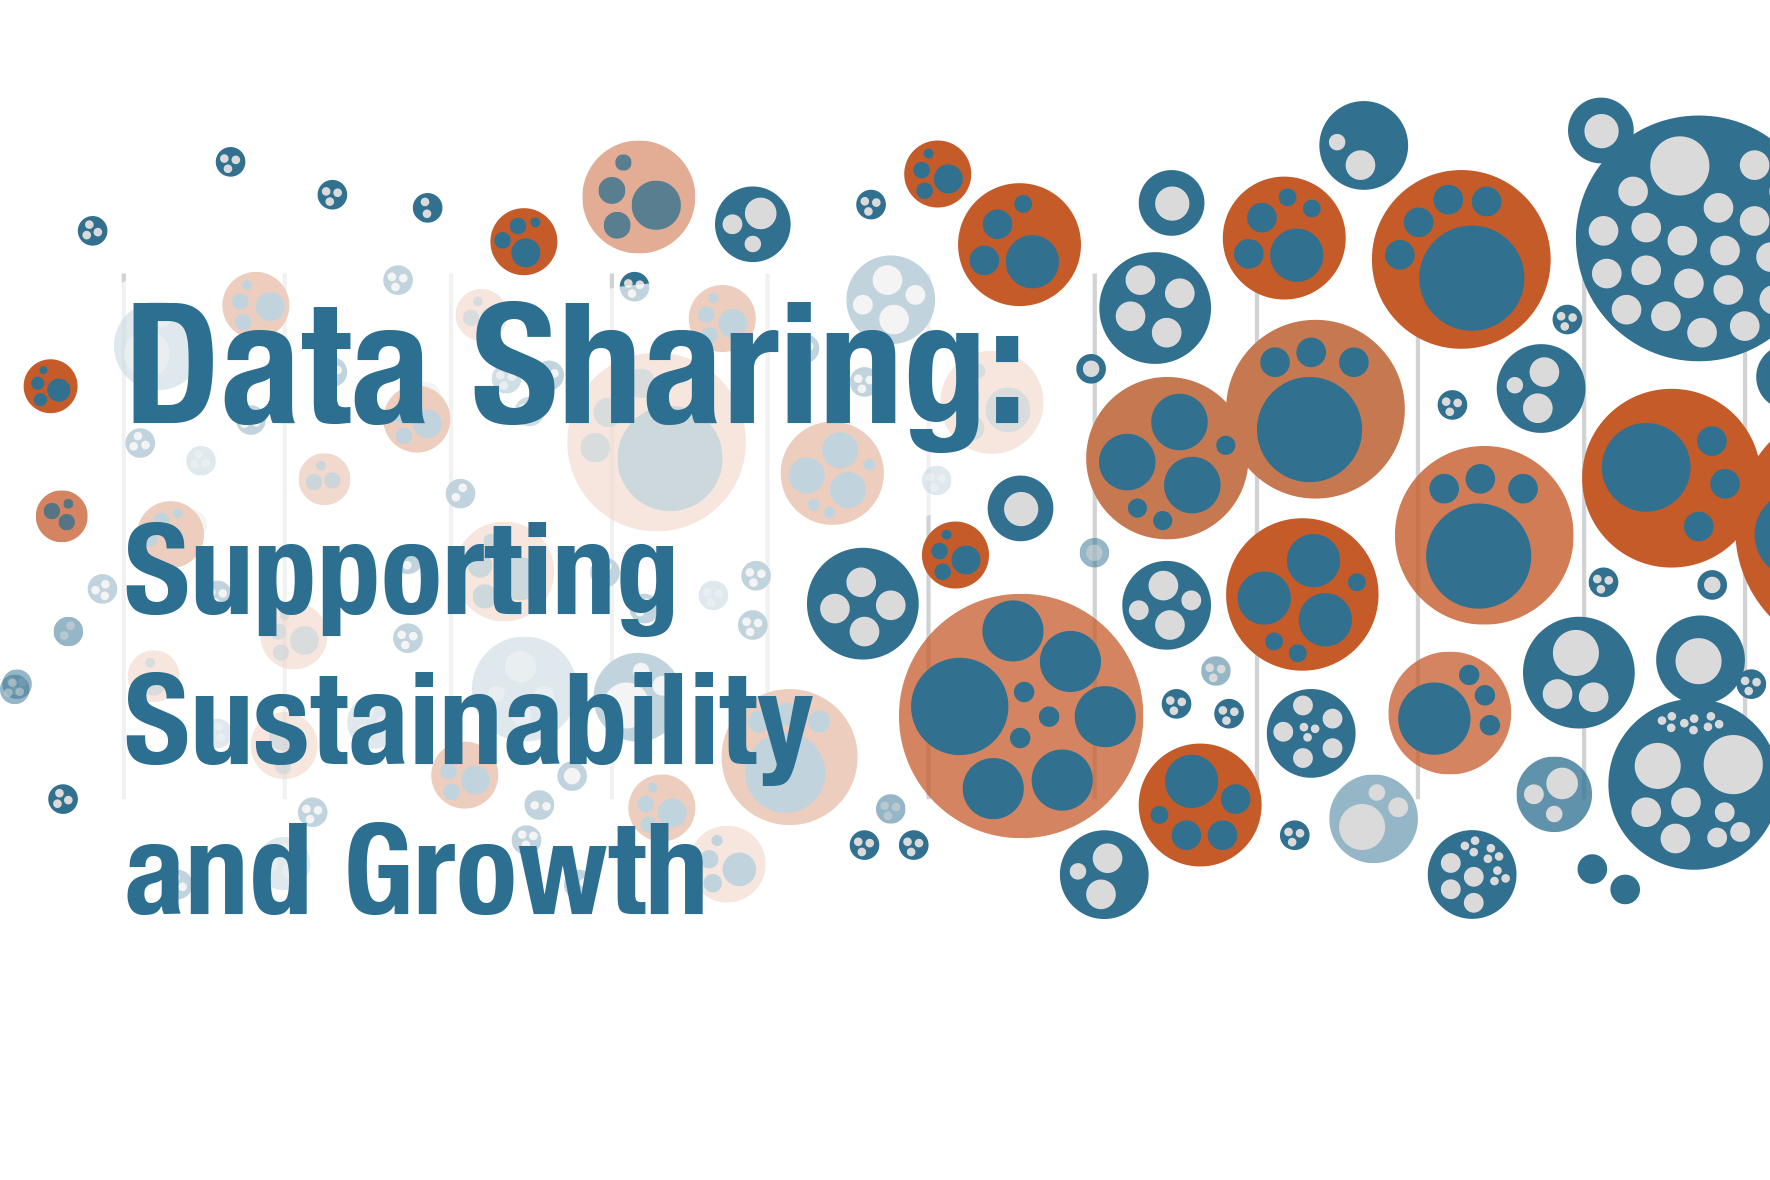 Data Sharing: Supporting Sustainability and Growth